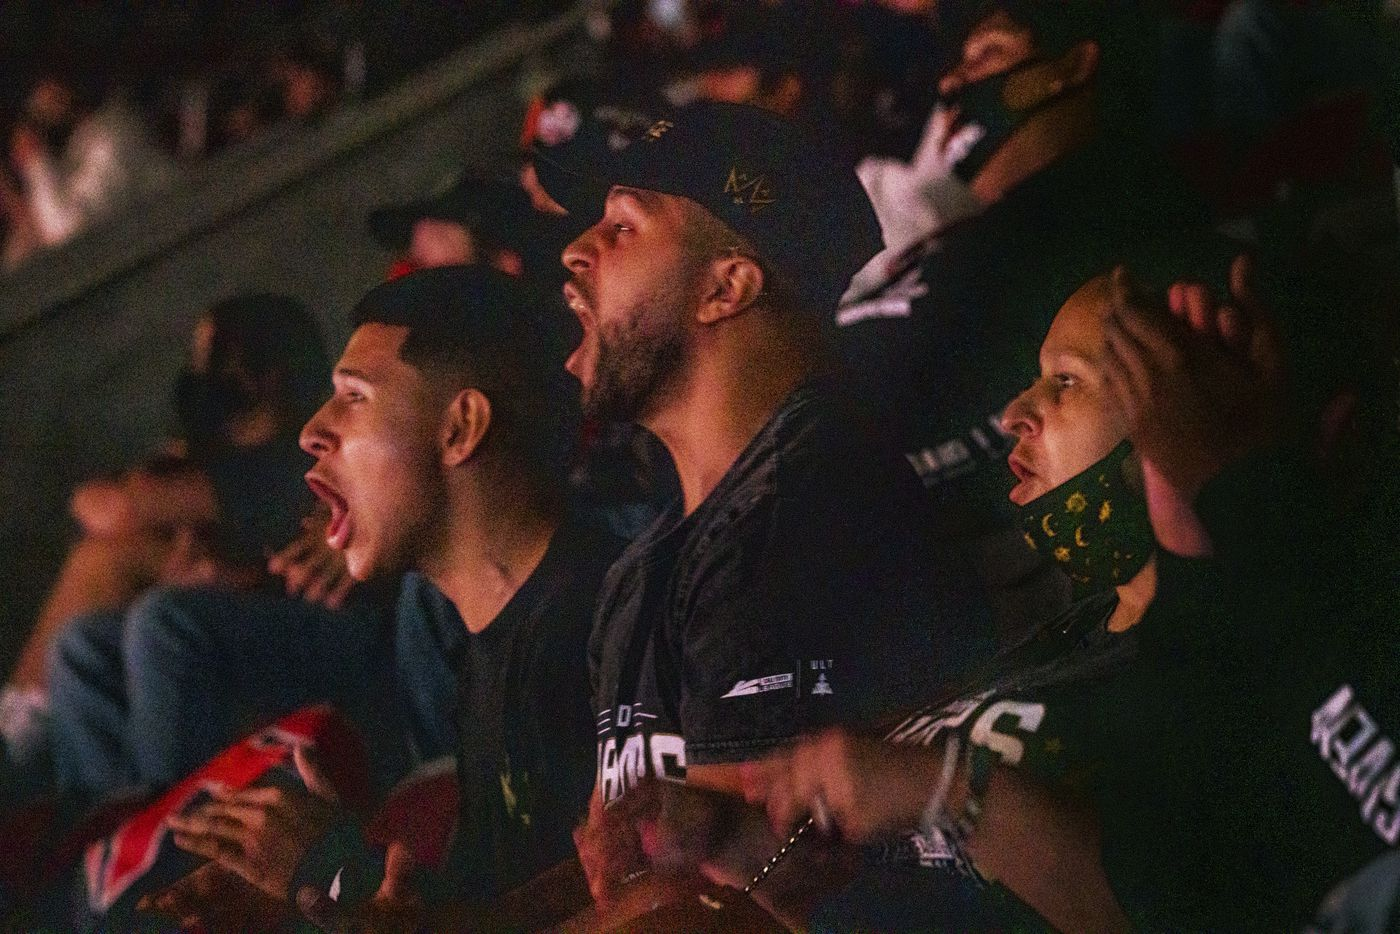 """From left, Anthony """"Shotzzy"""" Cuevas-Castro brothers Steven Quevedo, Gabriel Castro, and his mother Christina Hernandez cheer as they watch their Shotzzy compete during the winners final of the Call of Duty league playoffs at the Galen Center on Saturday, August 21, 2021 in Los Angeles, California. The Empire lost to FaZe 0 - 3 in their first match of the day but are still in contention to play in the finals through the elimination finals. (Justin L. Stewart/Special Contributor)"""